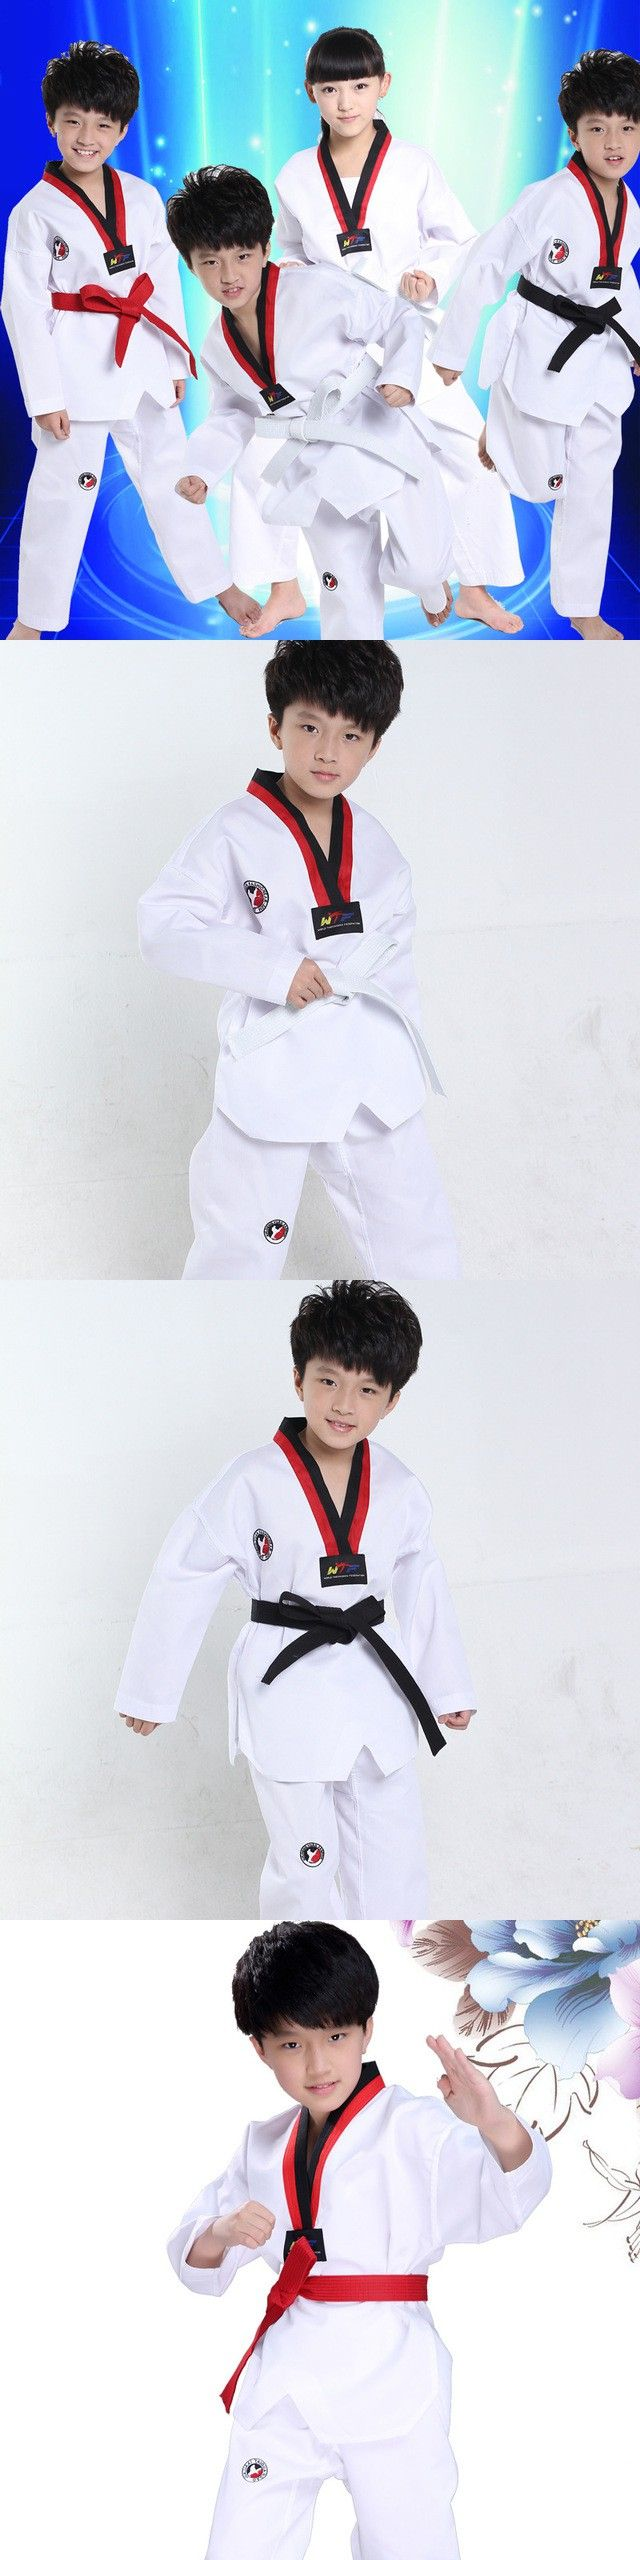 White Long Sleeves Kids Judo Kimono Clothes Children Karate Competition Performance Costumes Boys Girls Taekwondo Suits $21.25